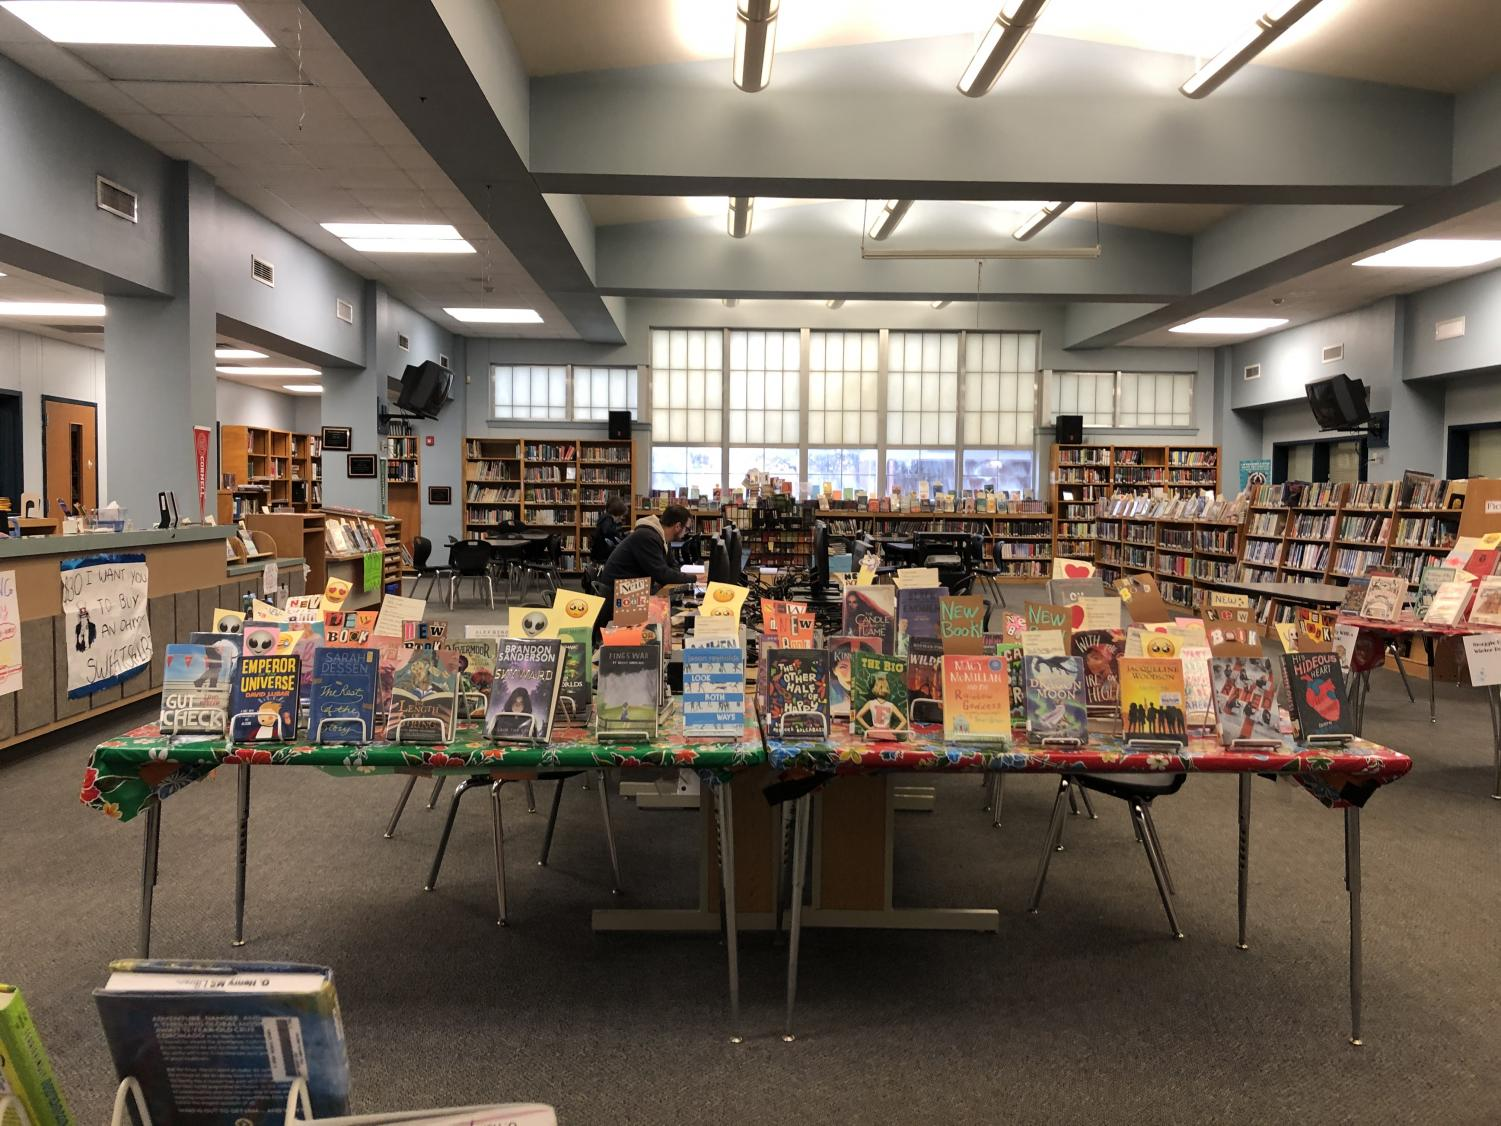 A display of books that greets library visitors